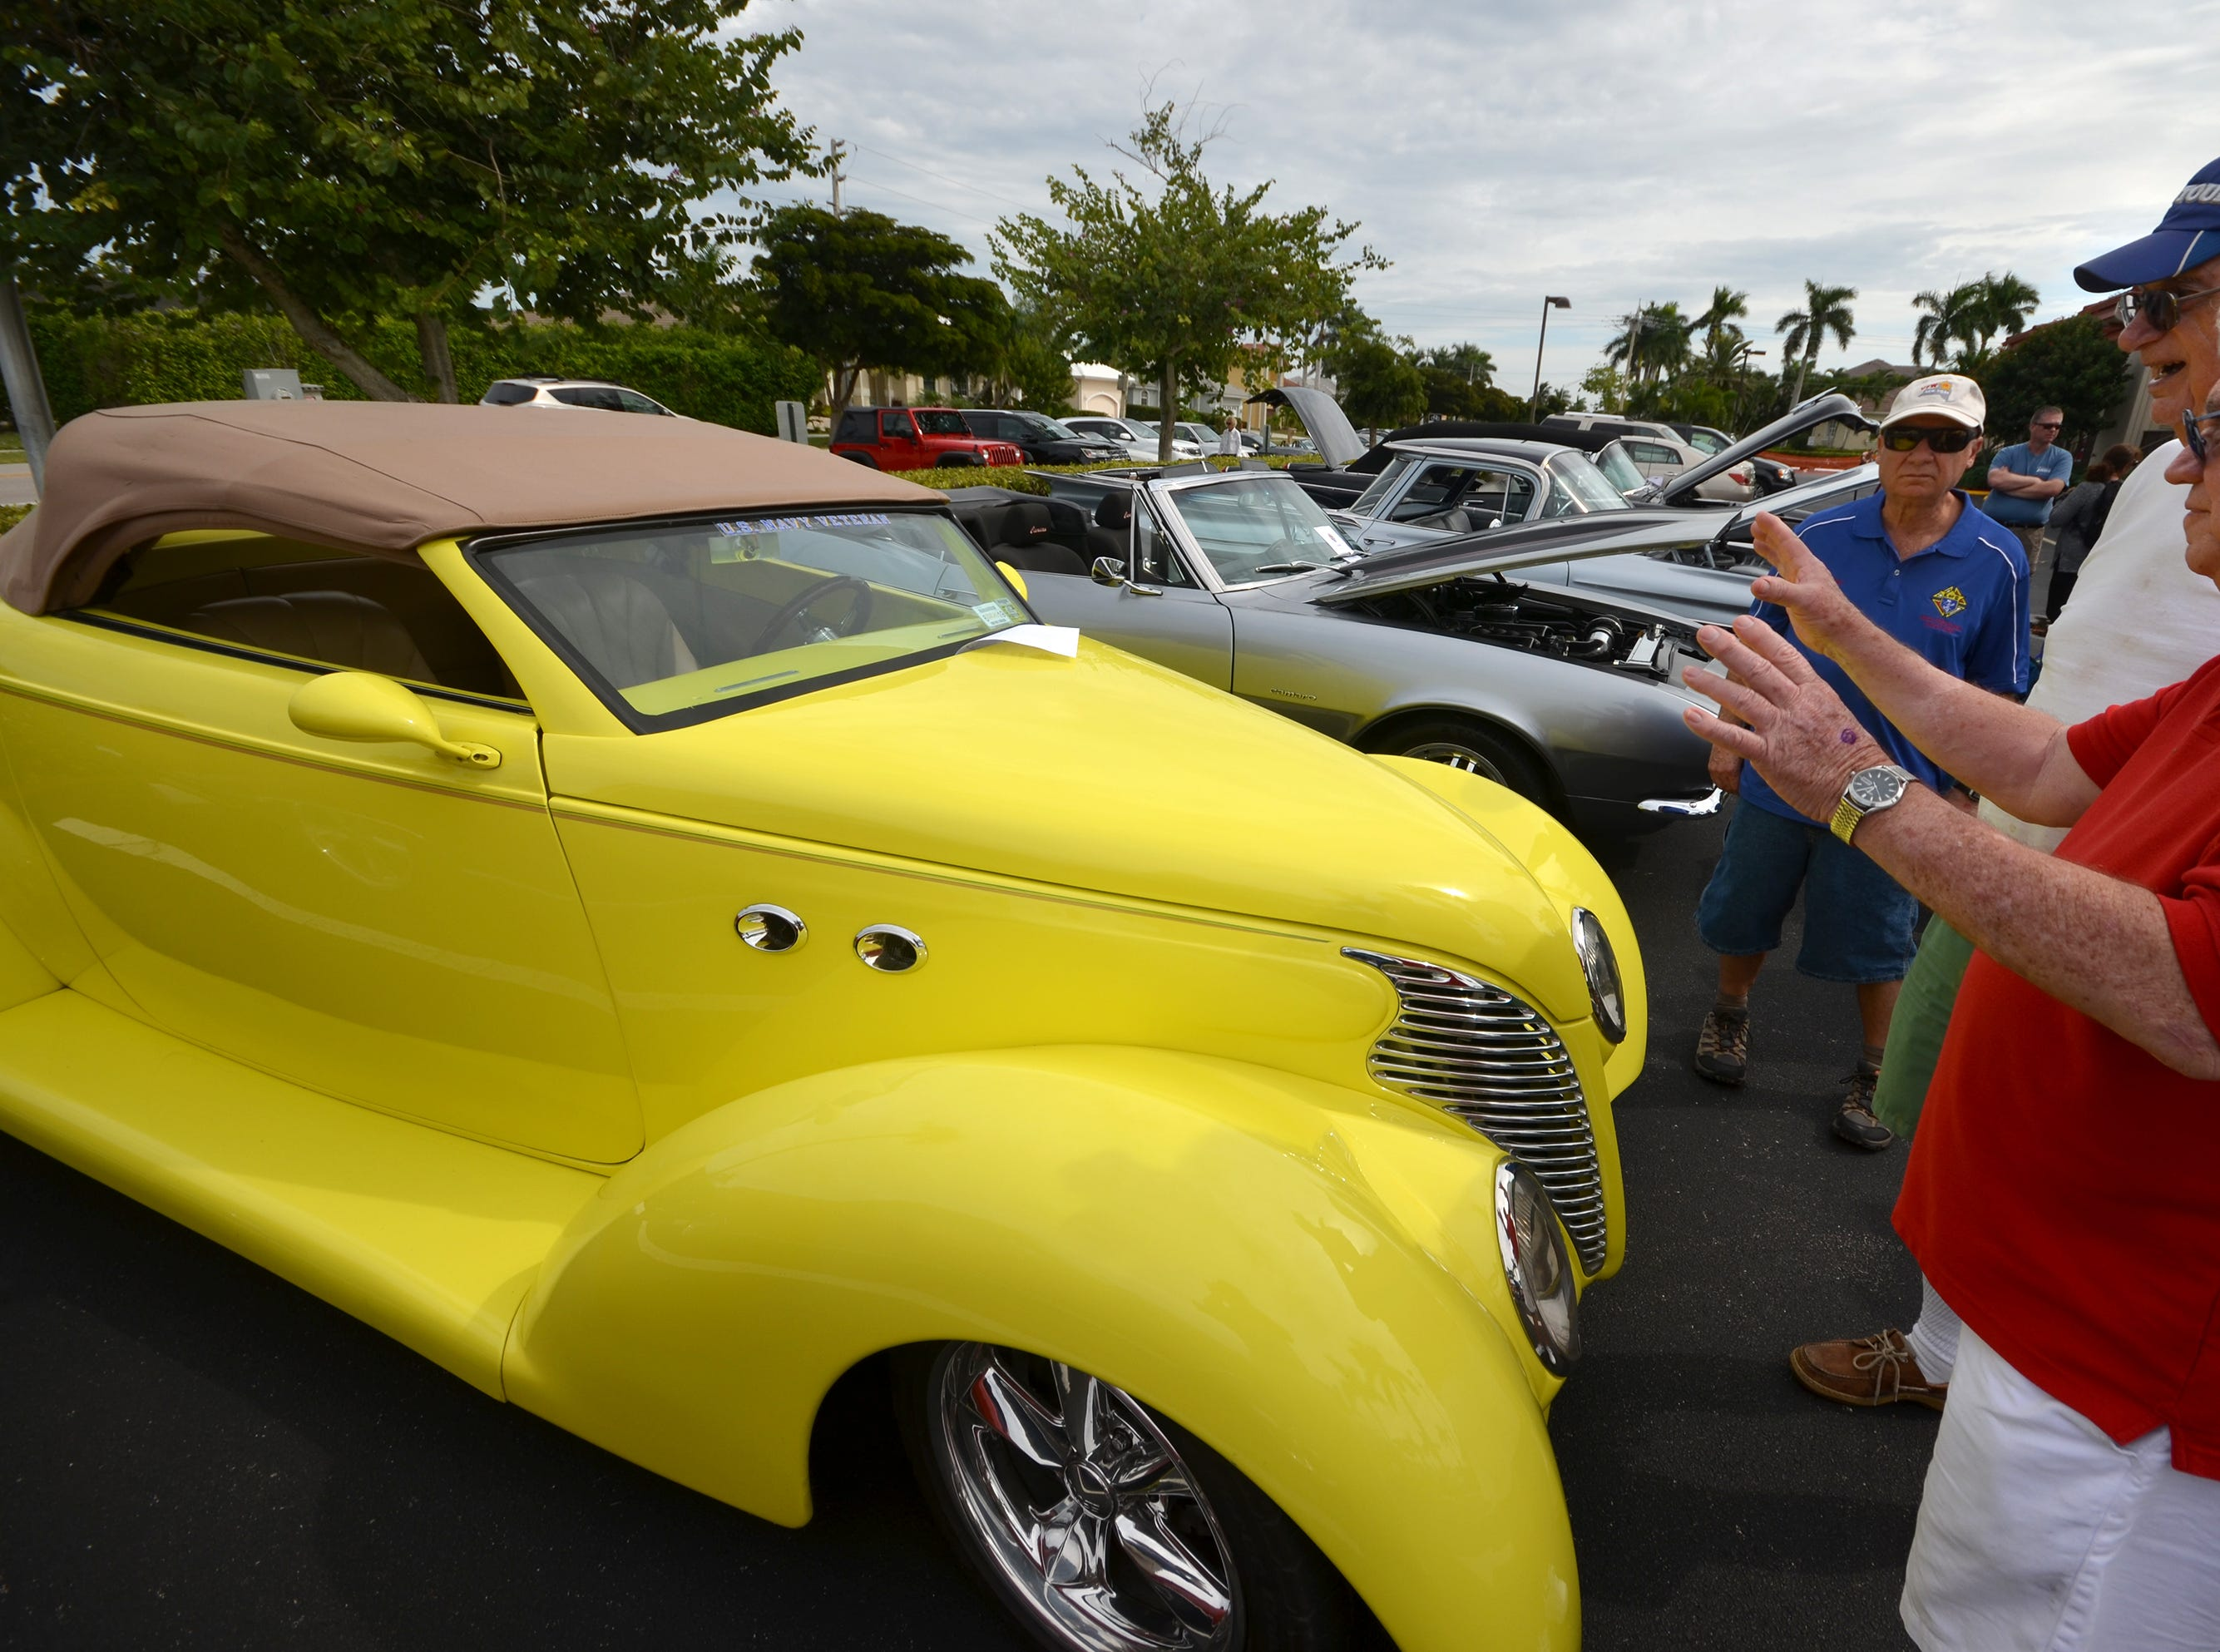 Fans inspect Dick Fracasse's 1939 Ford convertible. The Marco Island Knights of Columbus held their inaugural car show Saturday in the parking lot at San Marco Catholic Church.